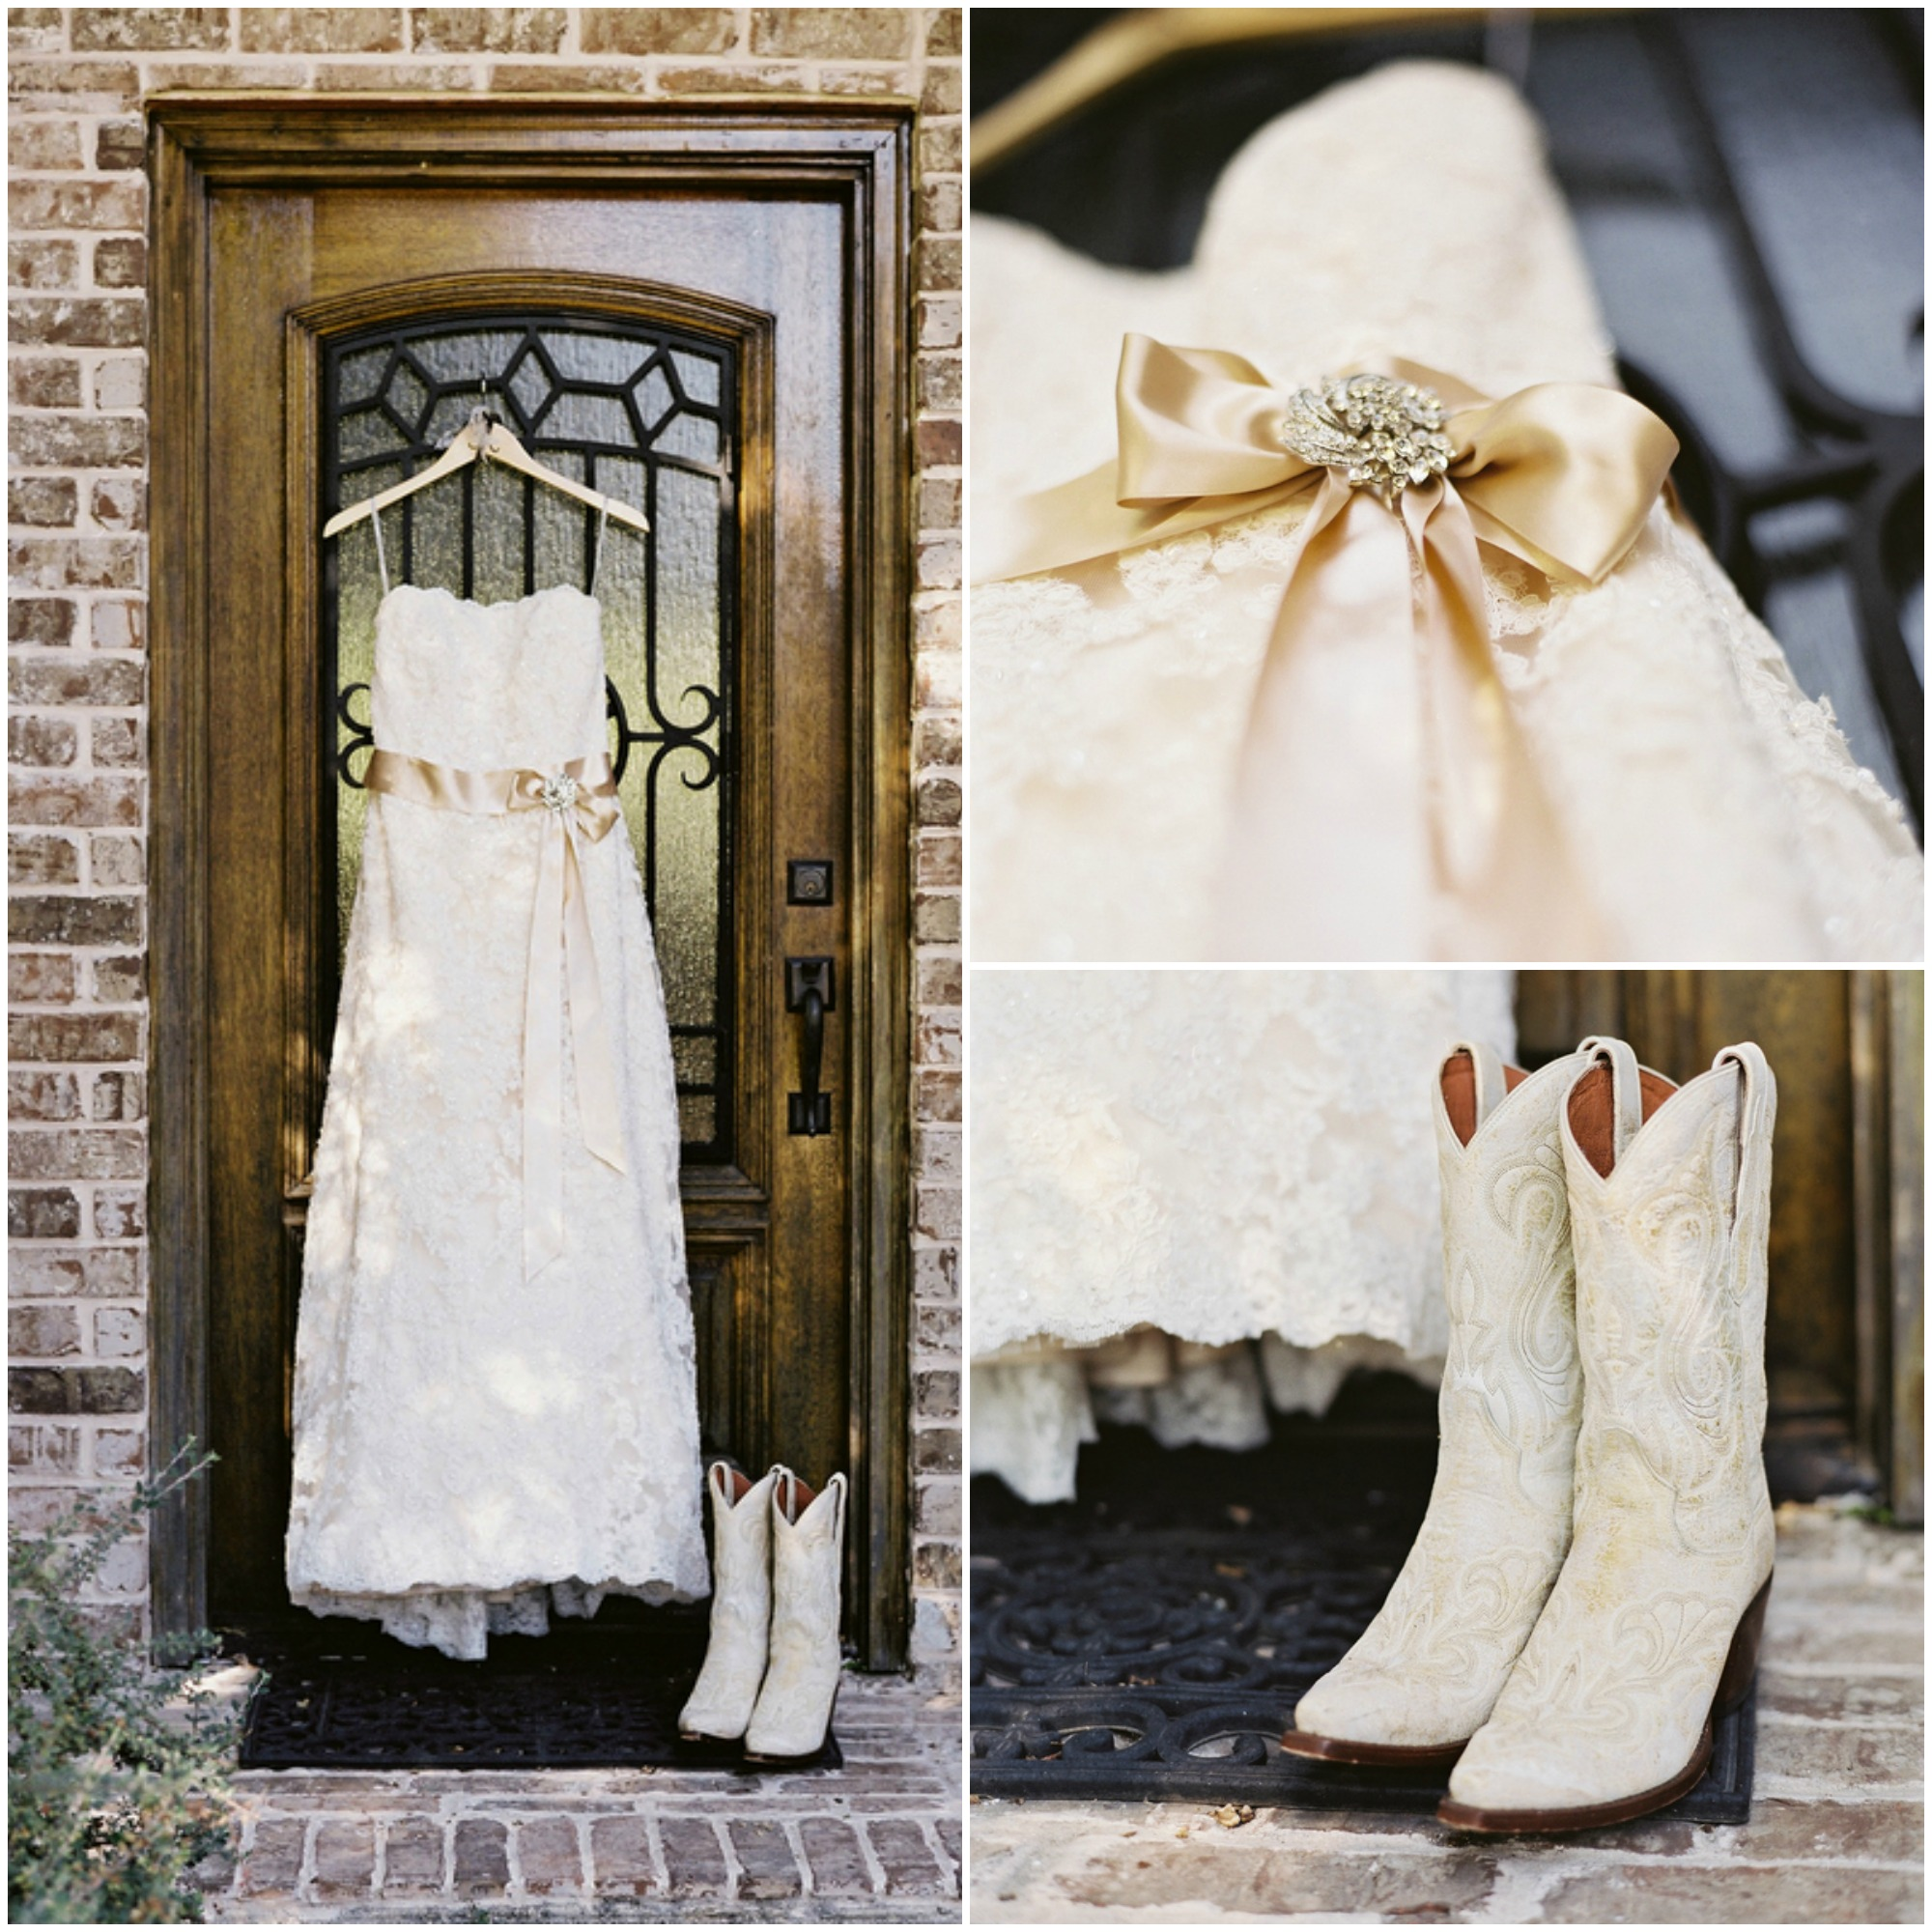 Country Wedding Dresses To Wear With Boots: Wildcard Wednesday: Cowboy Boots